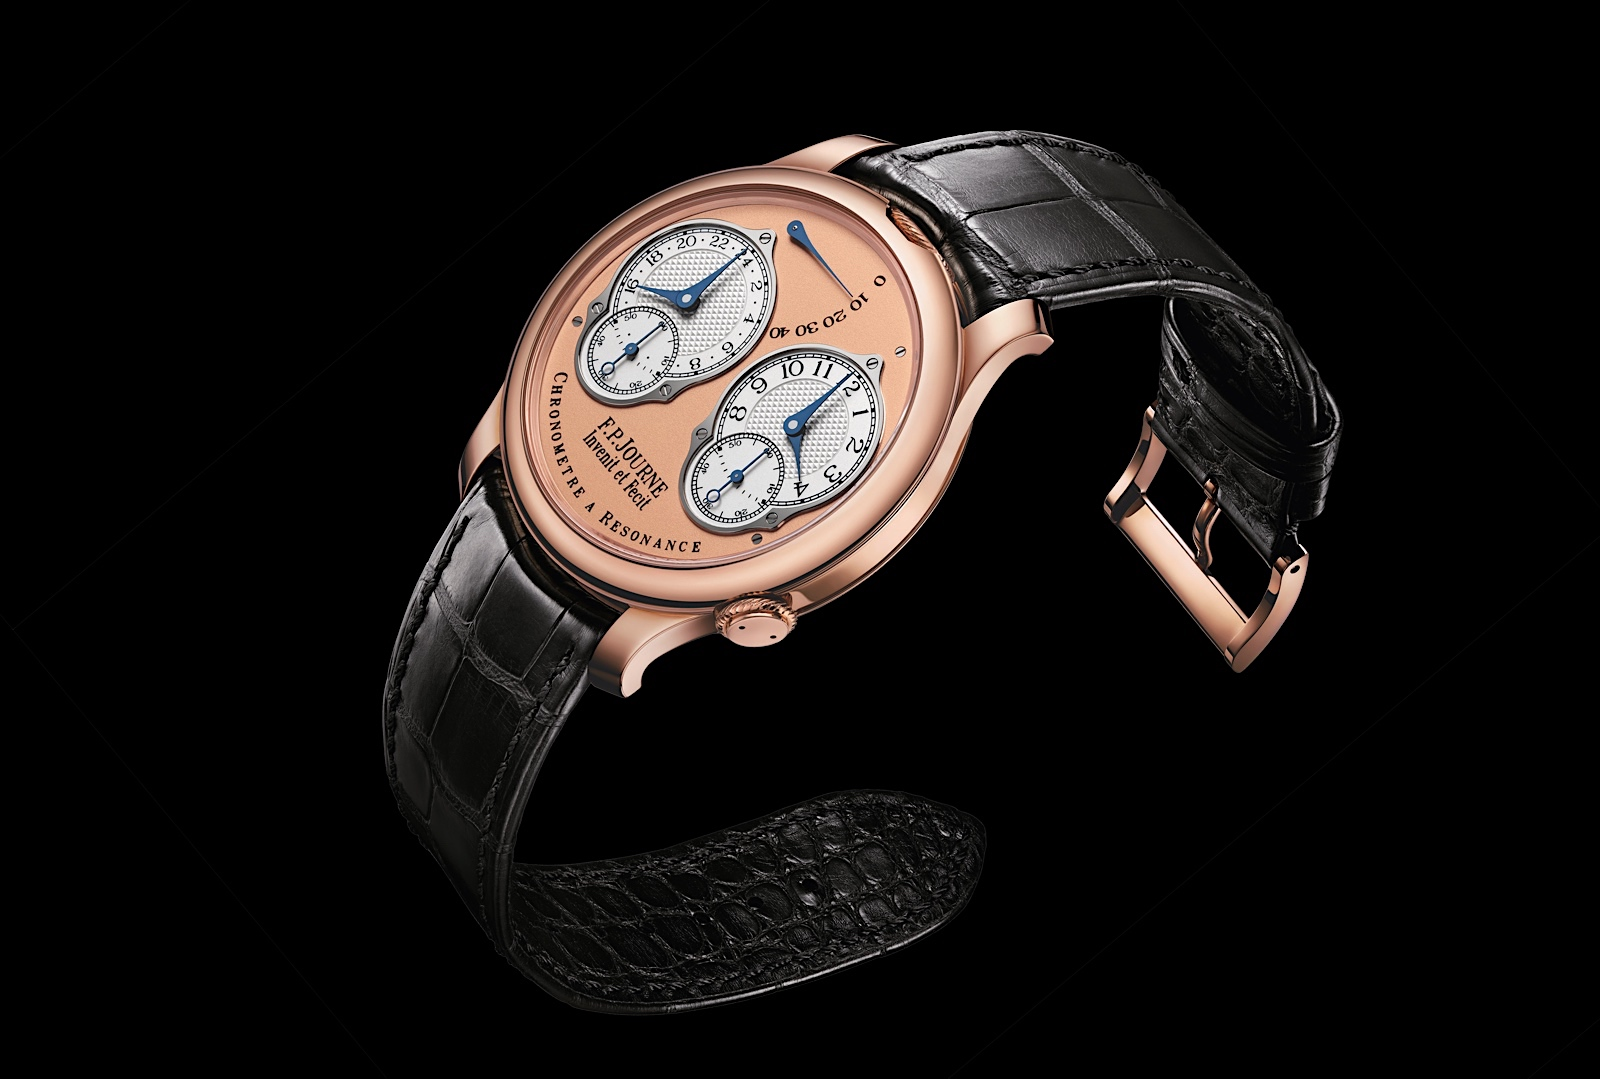 F.P. Journe Chronometre a Resonance 2019 - perfil